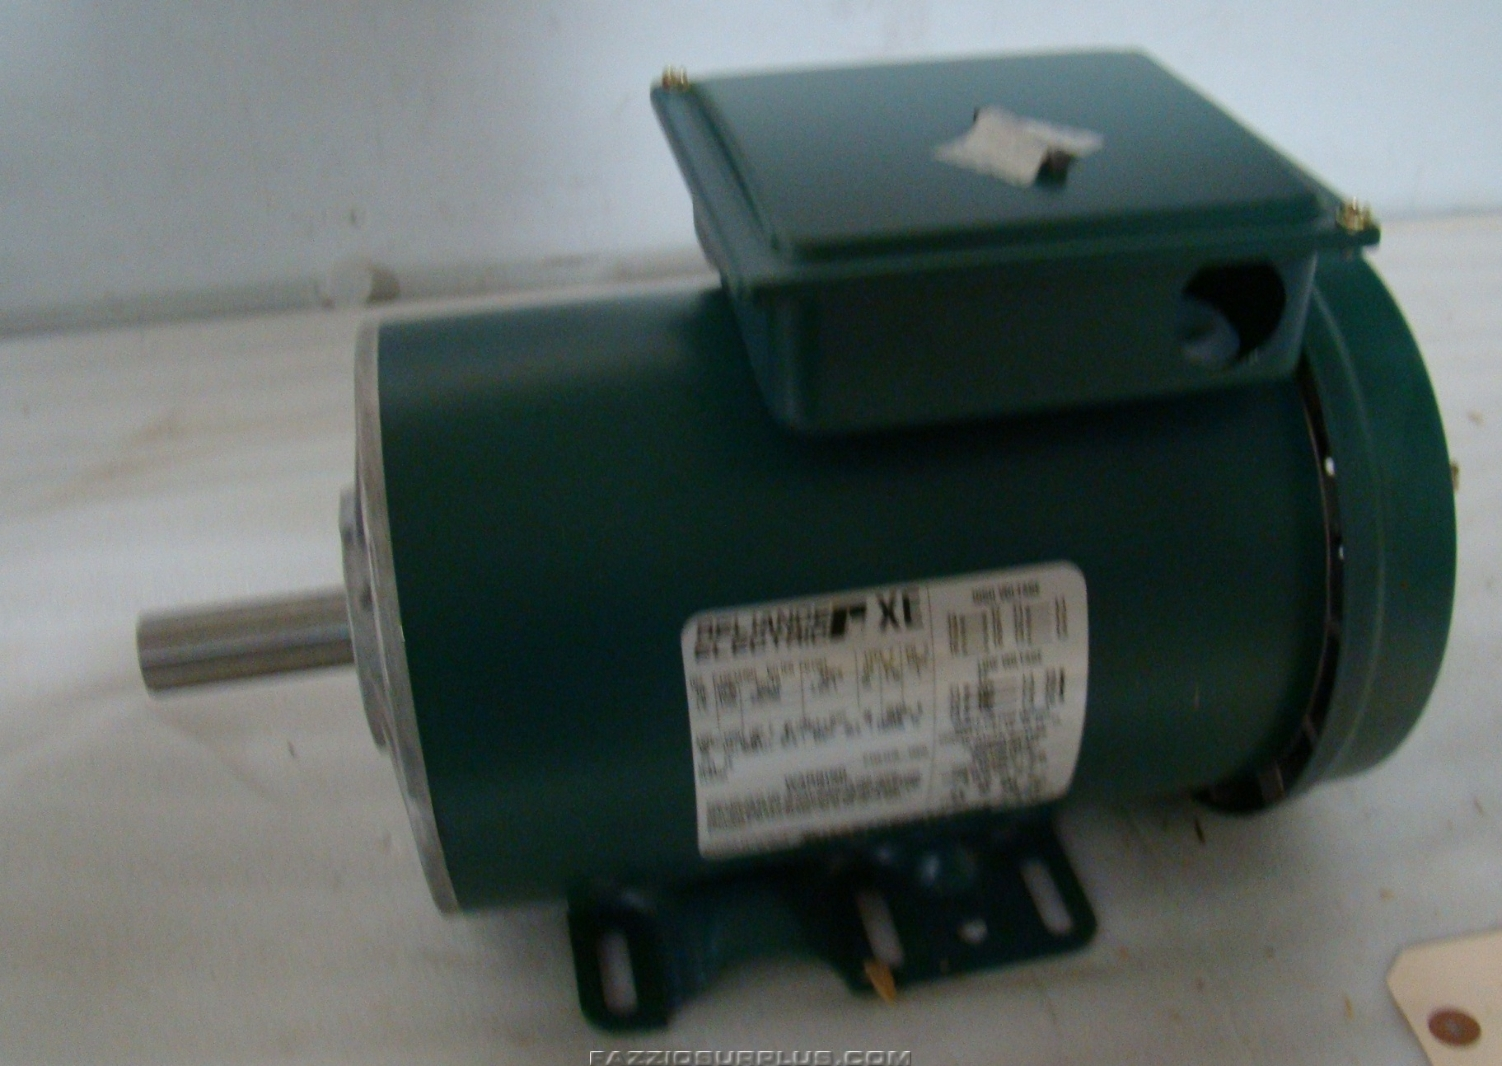 Reliance 1 5 electric motor 230 460v p14x1475 ebay for Reliance electric motor parts